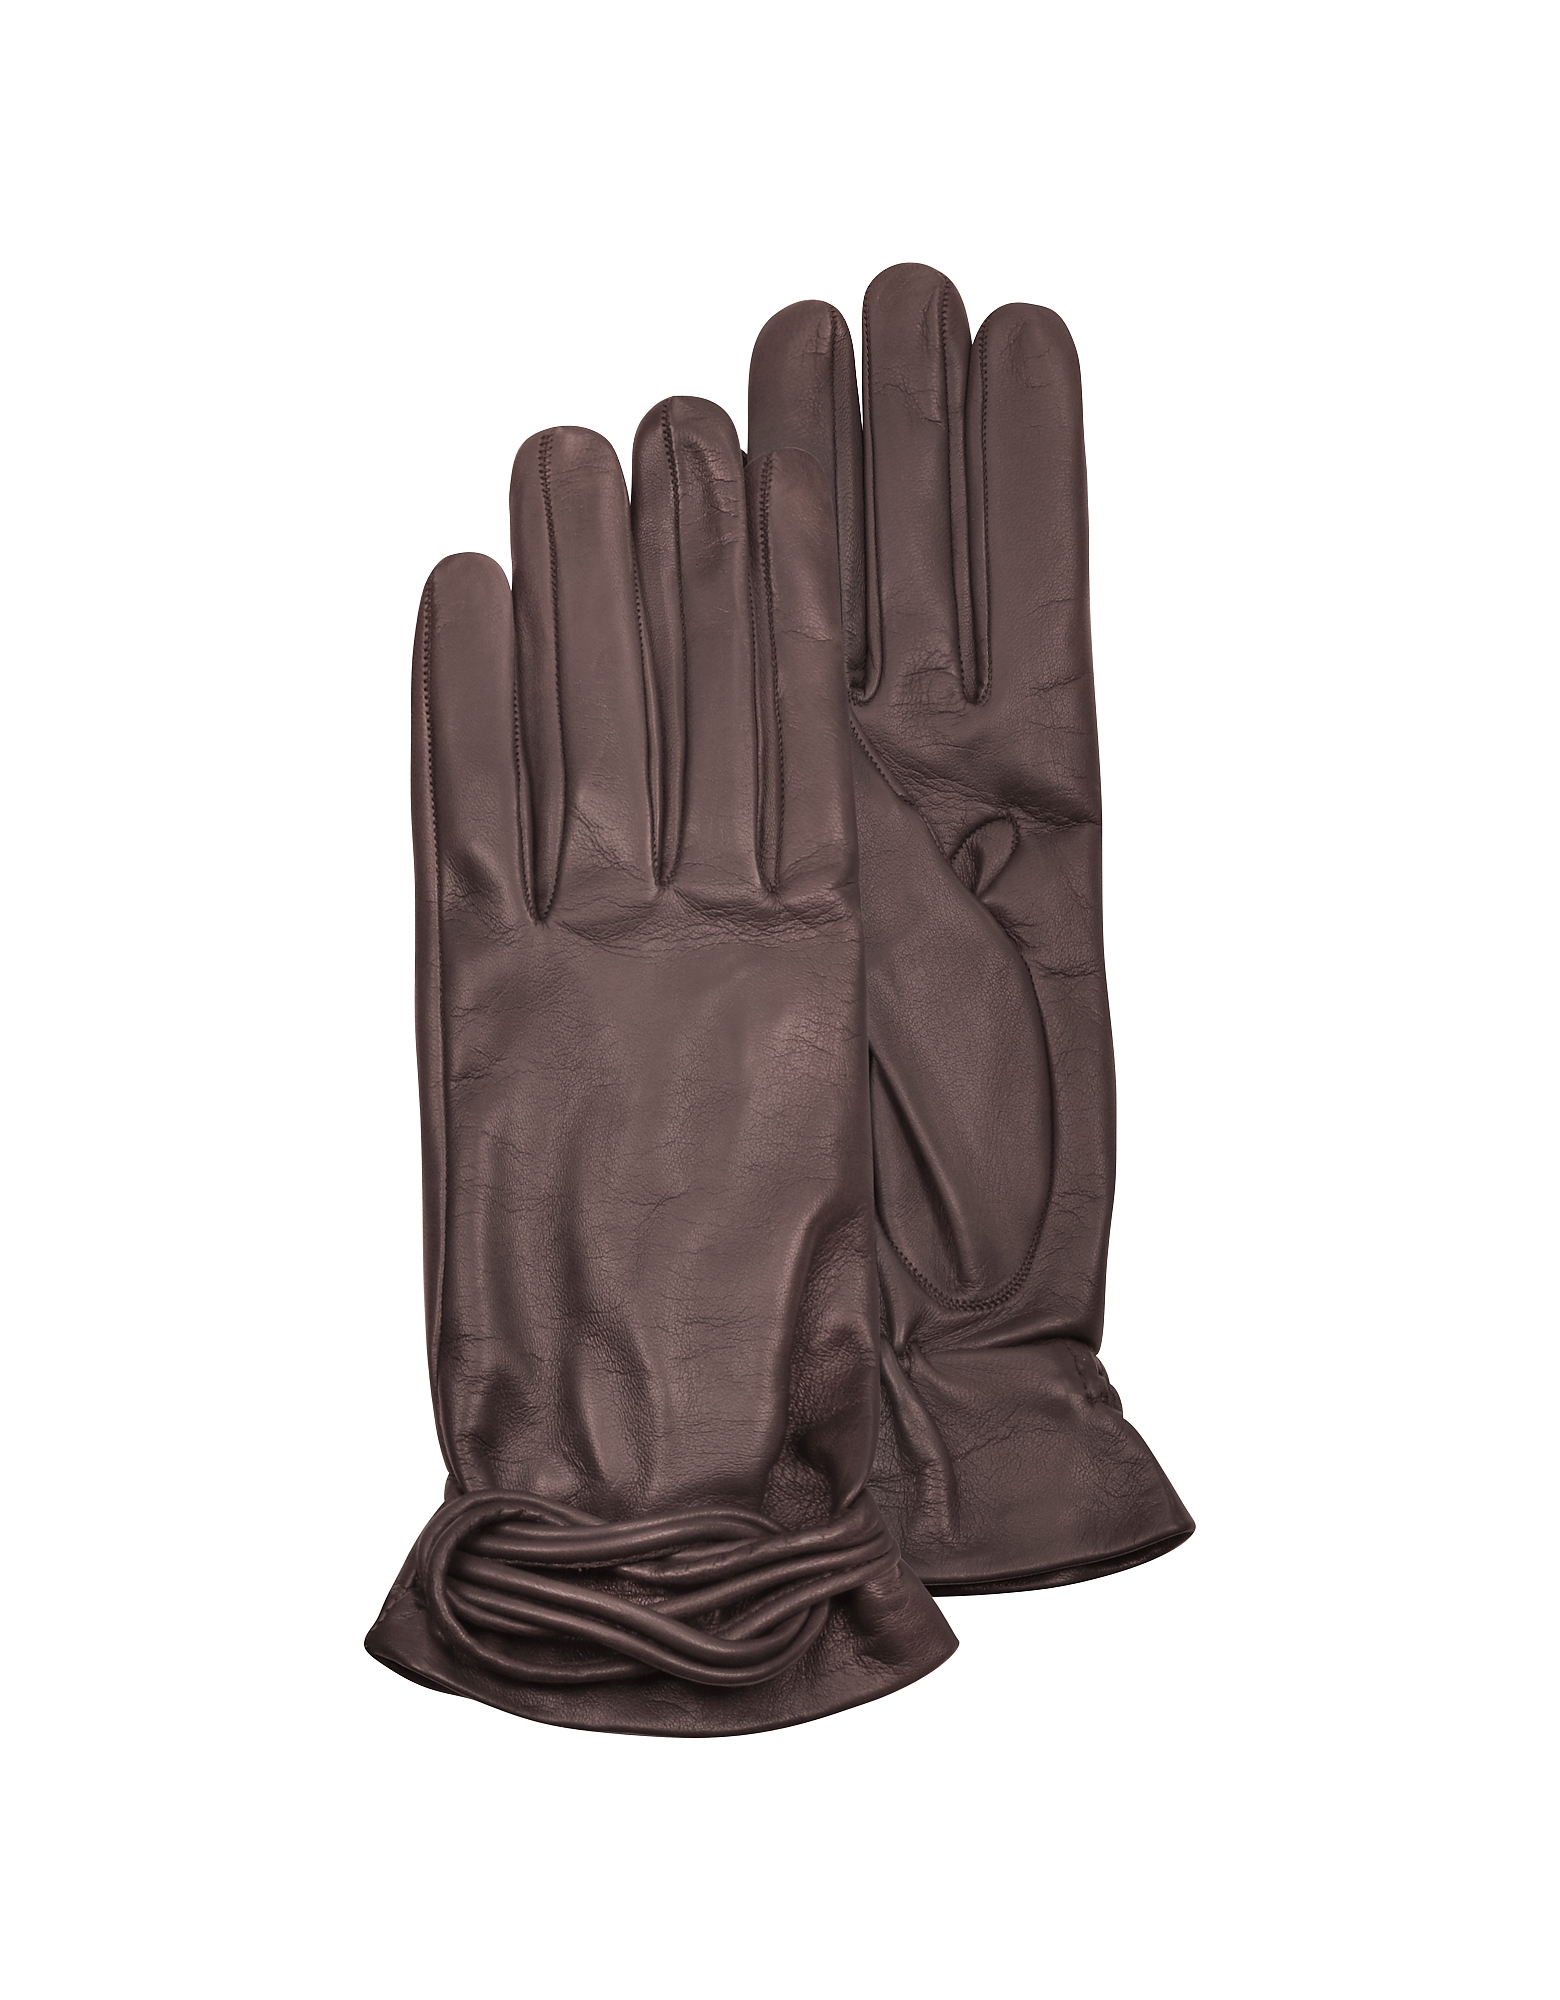 Women's Brown Leather Gloves w/Knot